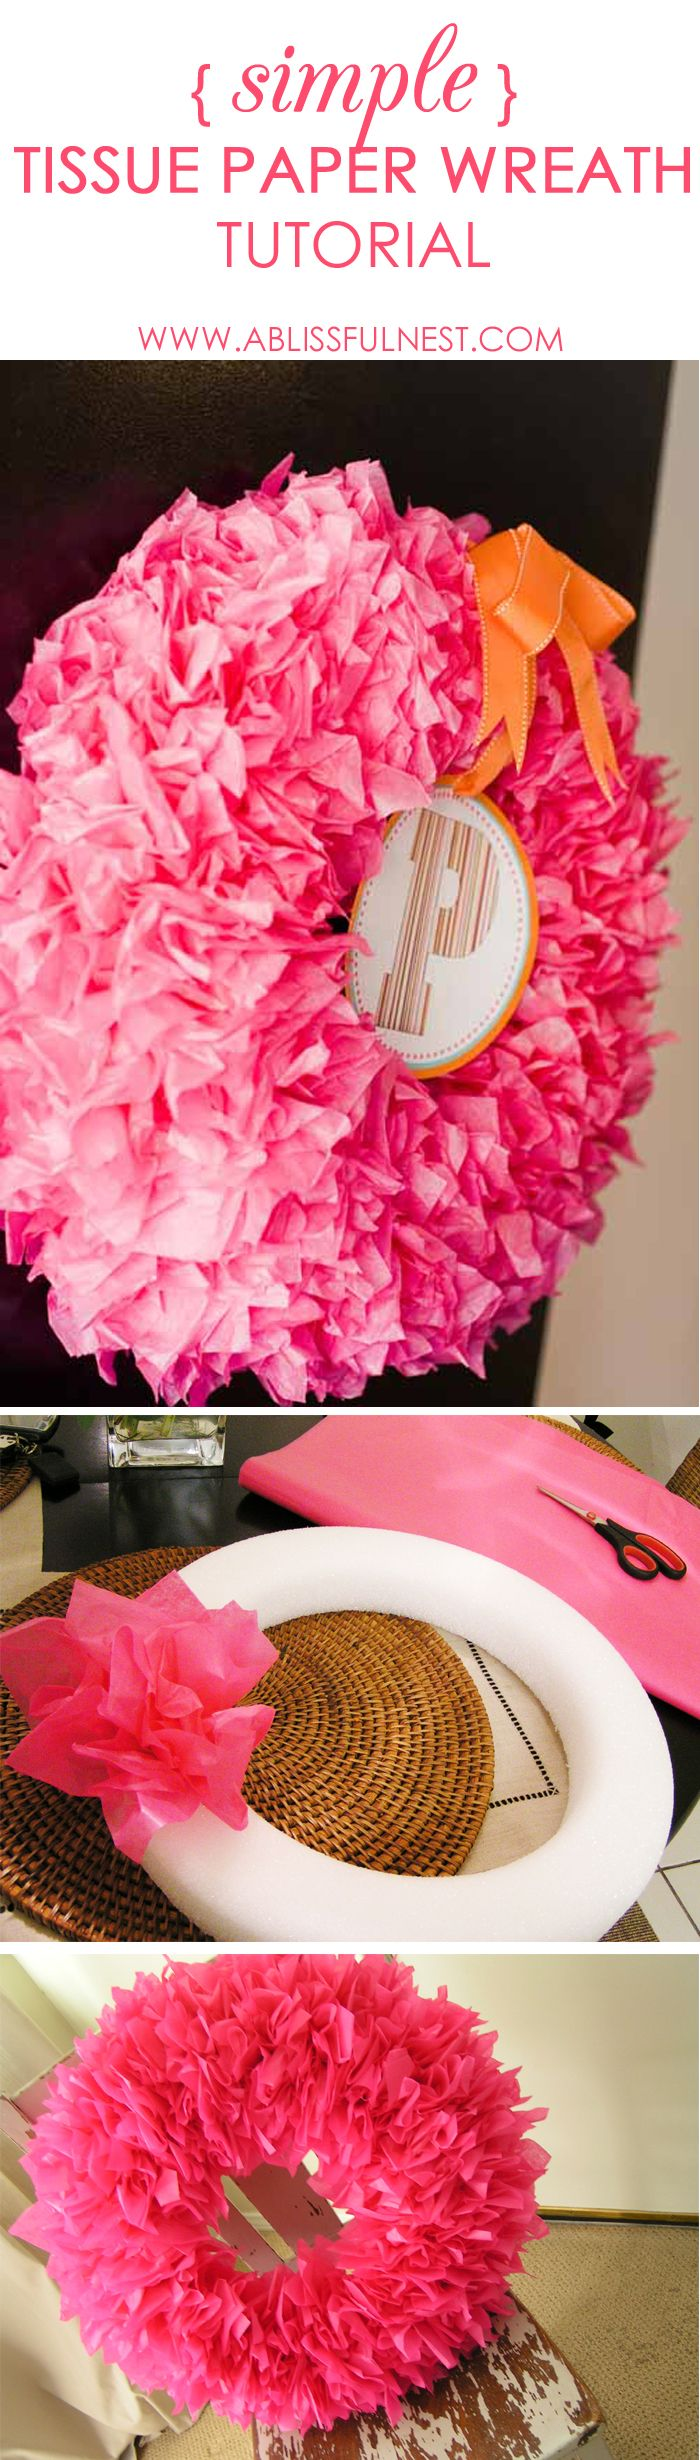 Tissue Paper Wreath Tutorial - easy simple steps to create this DIY wreath.